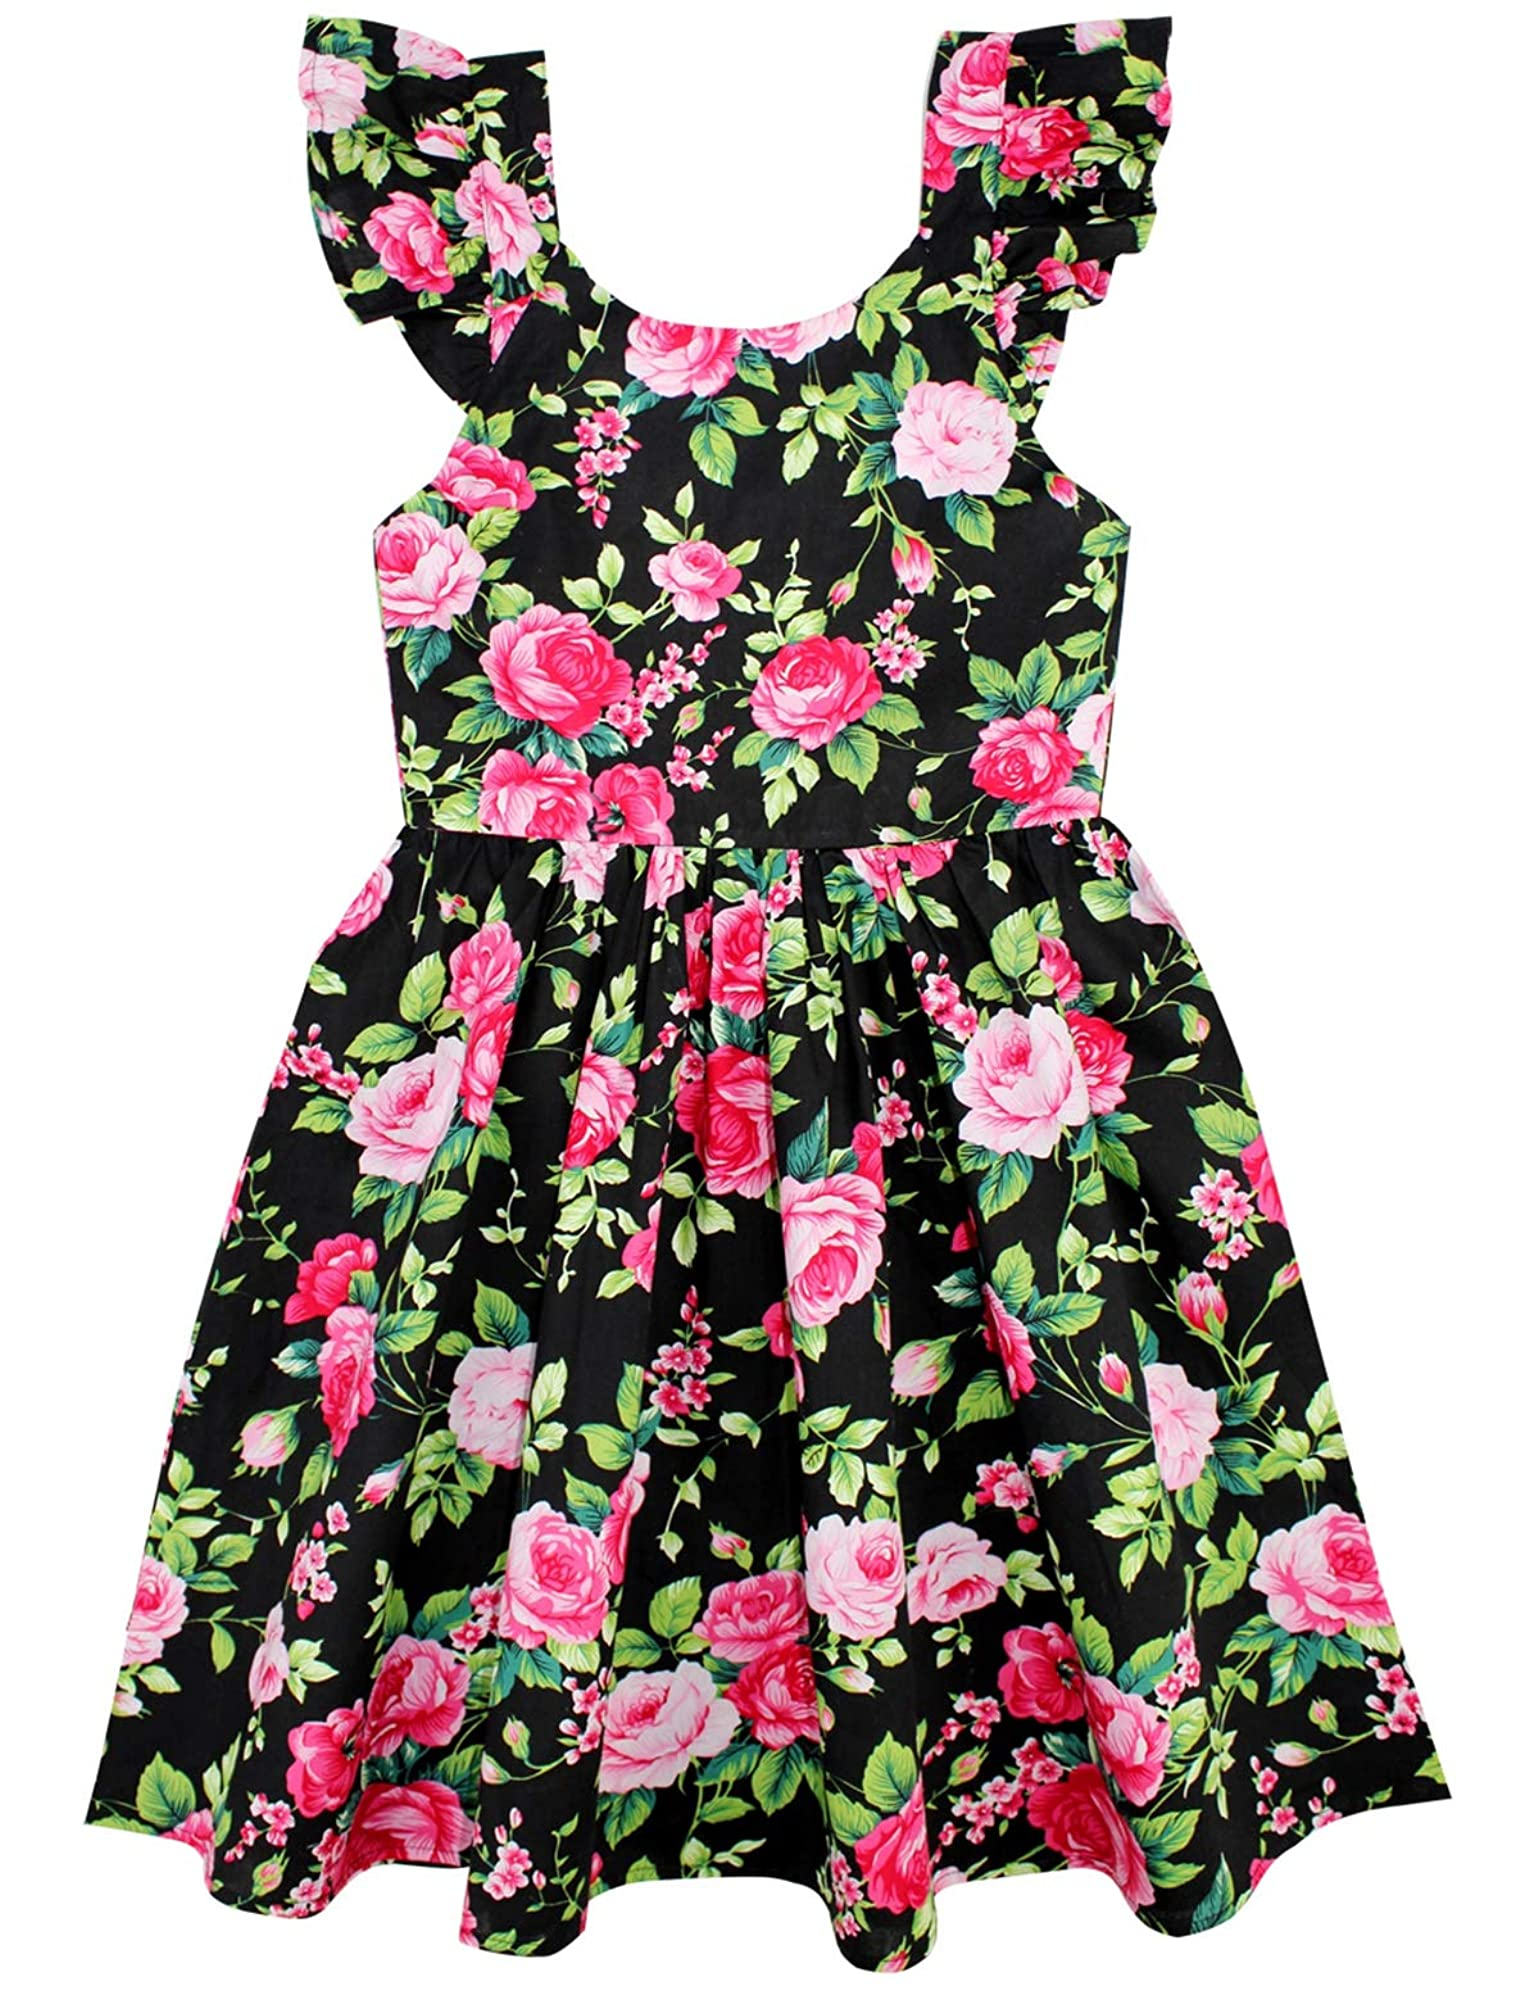 Floral Print Sleeveless Summer Dress